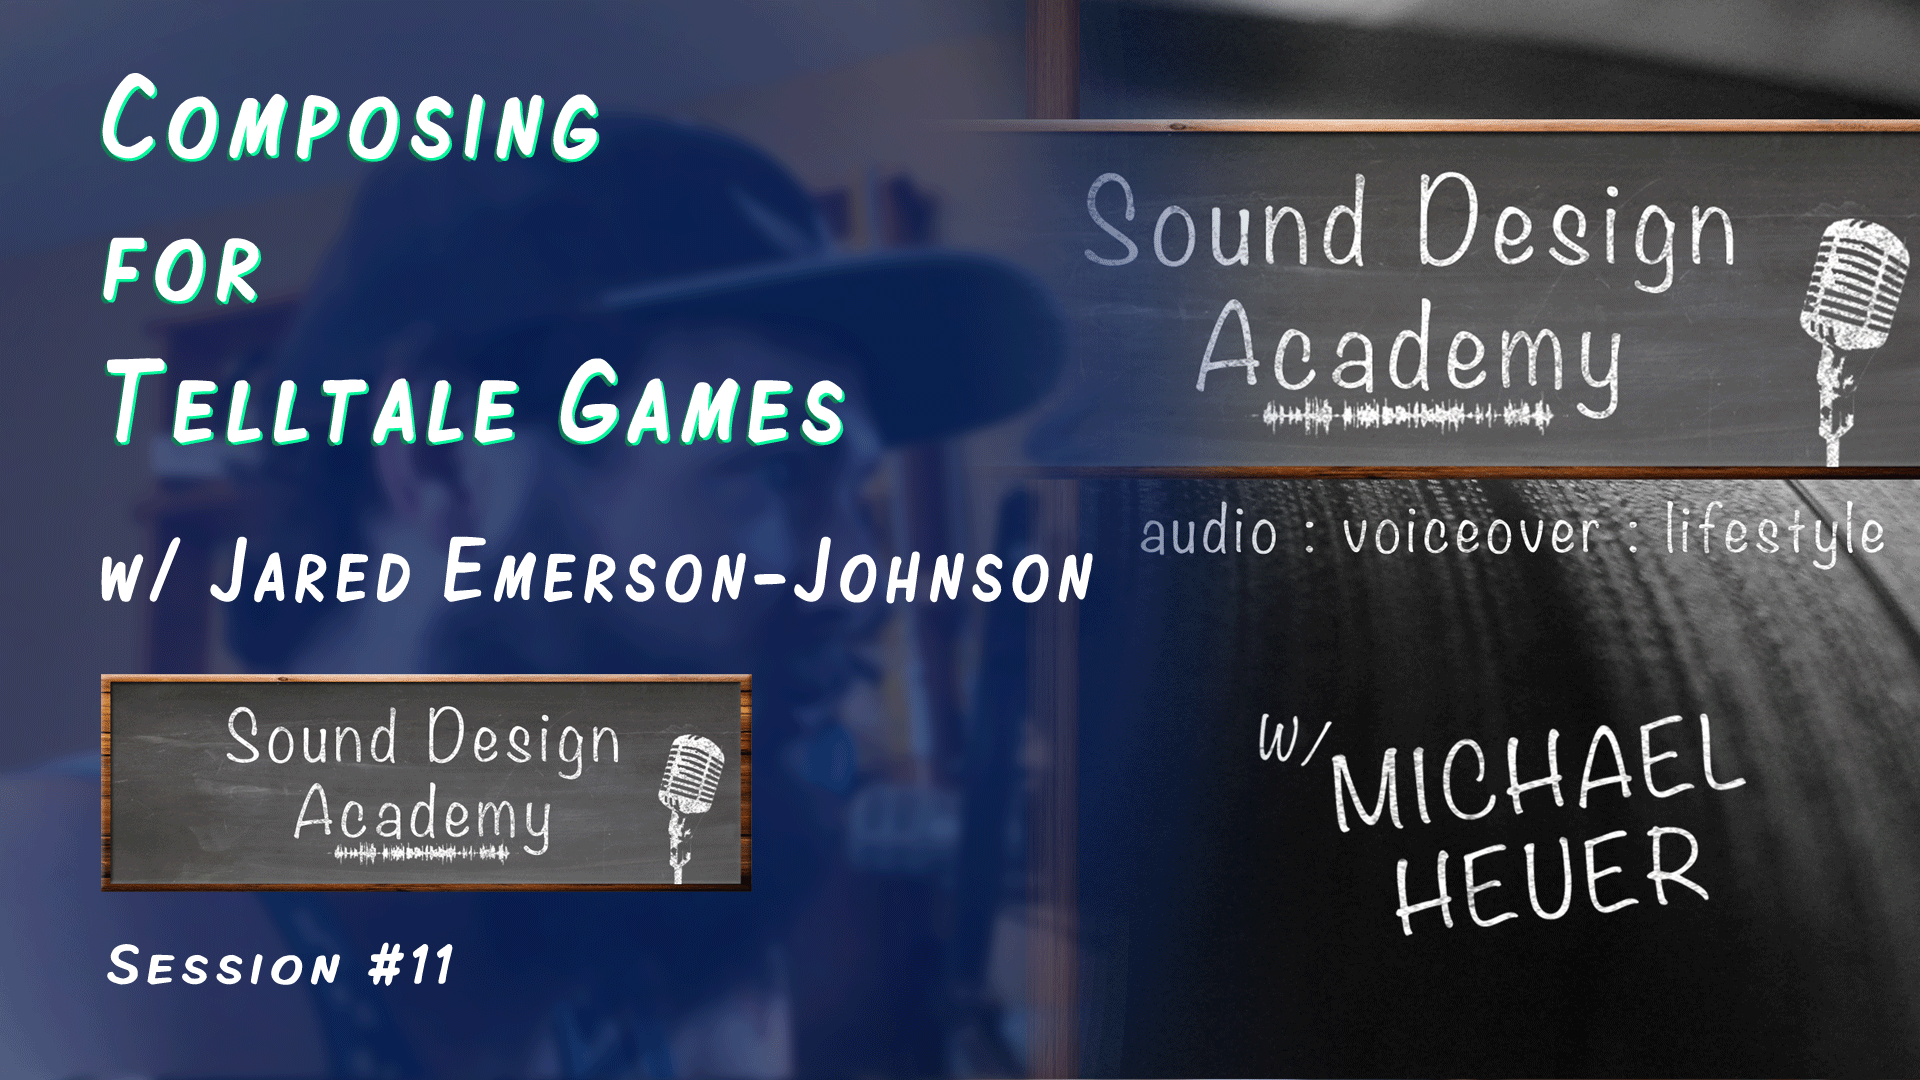 Sound Design Academy session 11